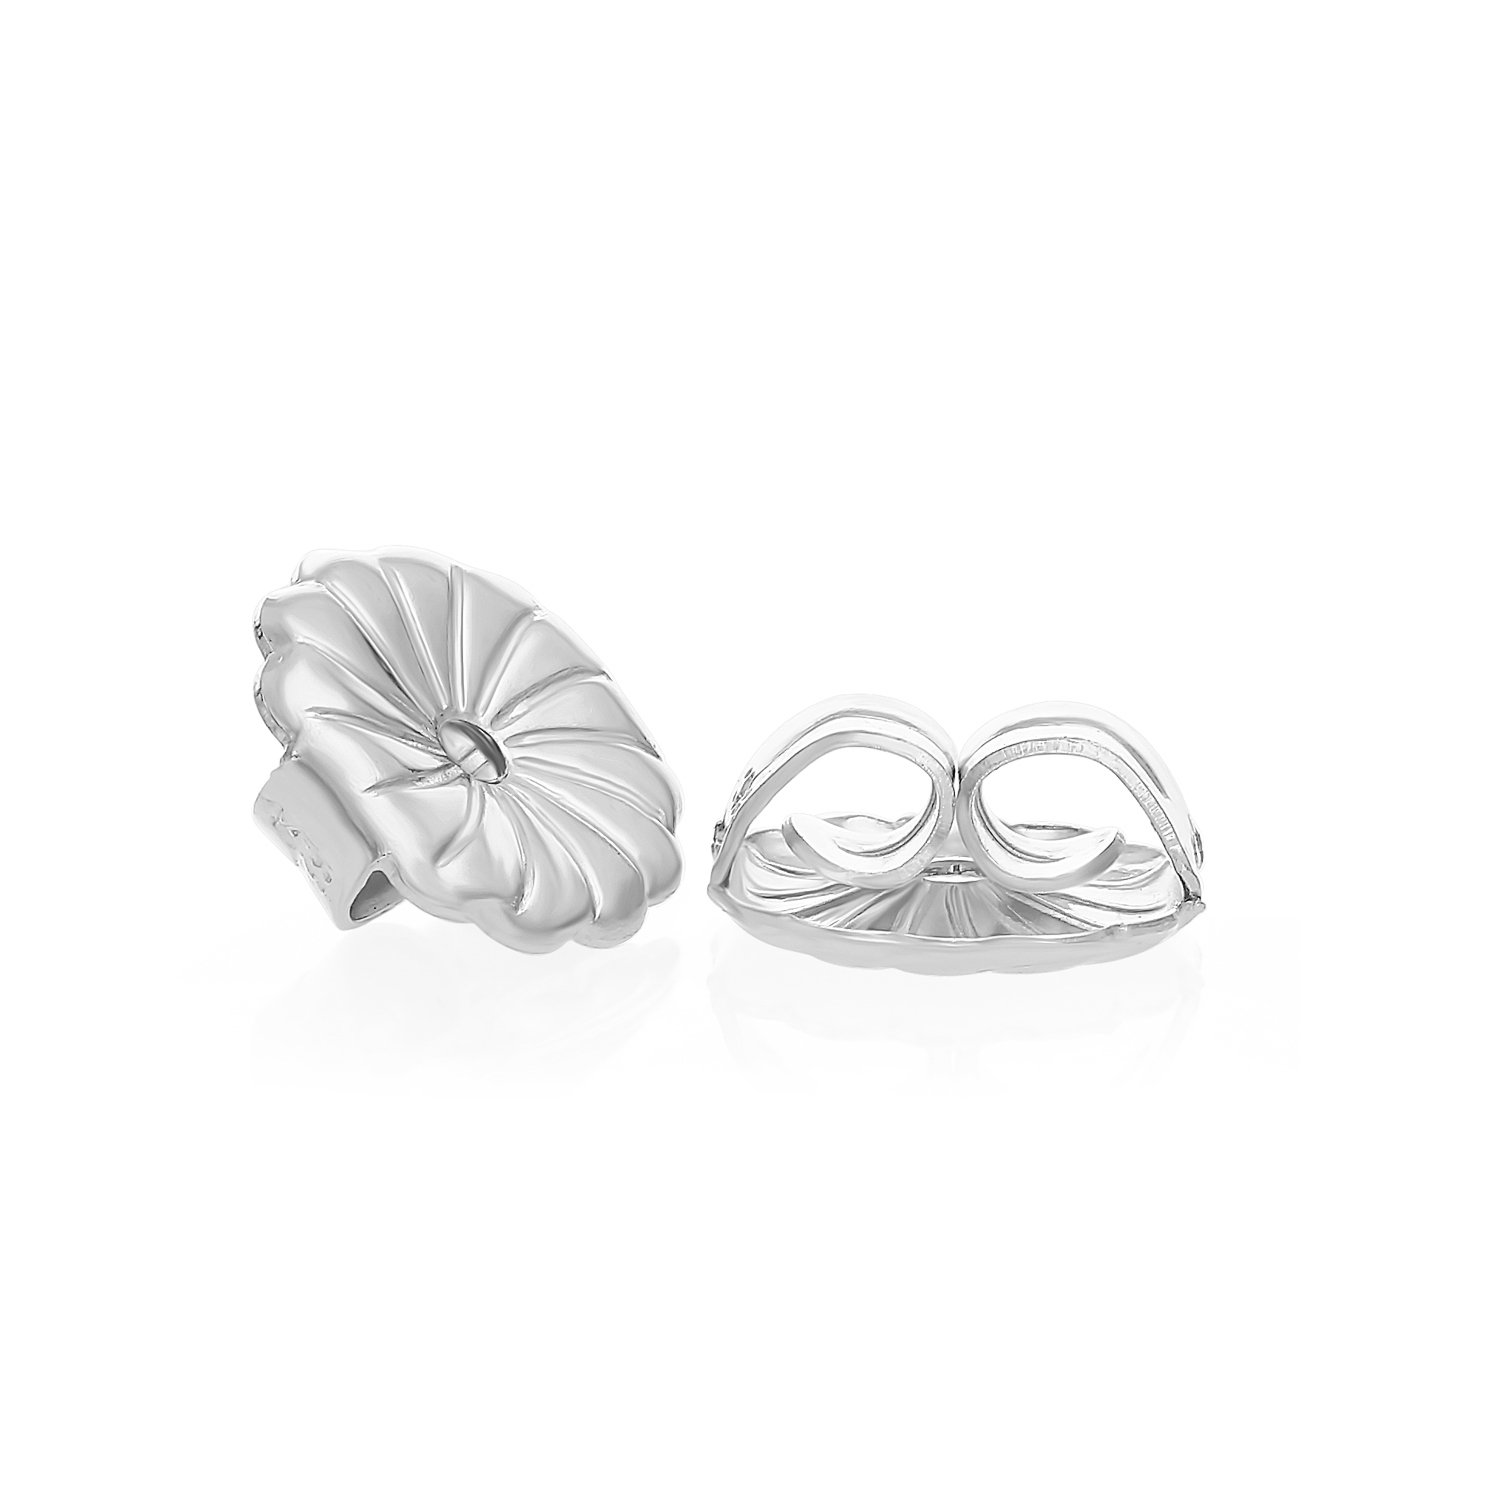 Art and Molly 14k White Gold Earring Back Replacement Secure and Comfortable with Ear Locking Tension Grip Tight Nut (Medium) by Art and Molly (Image #4)